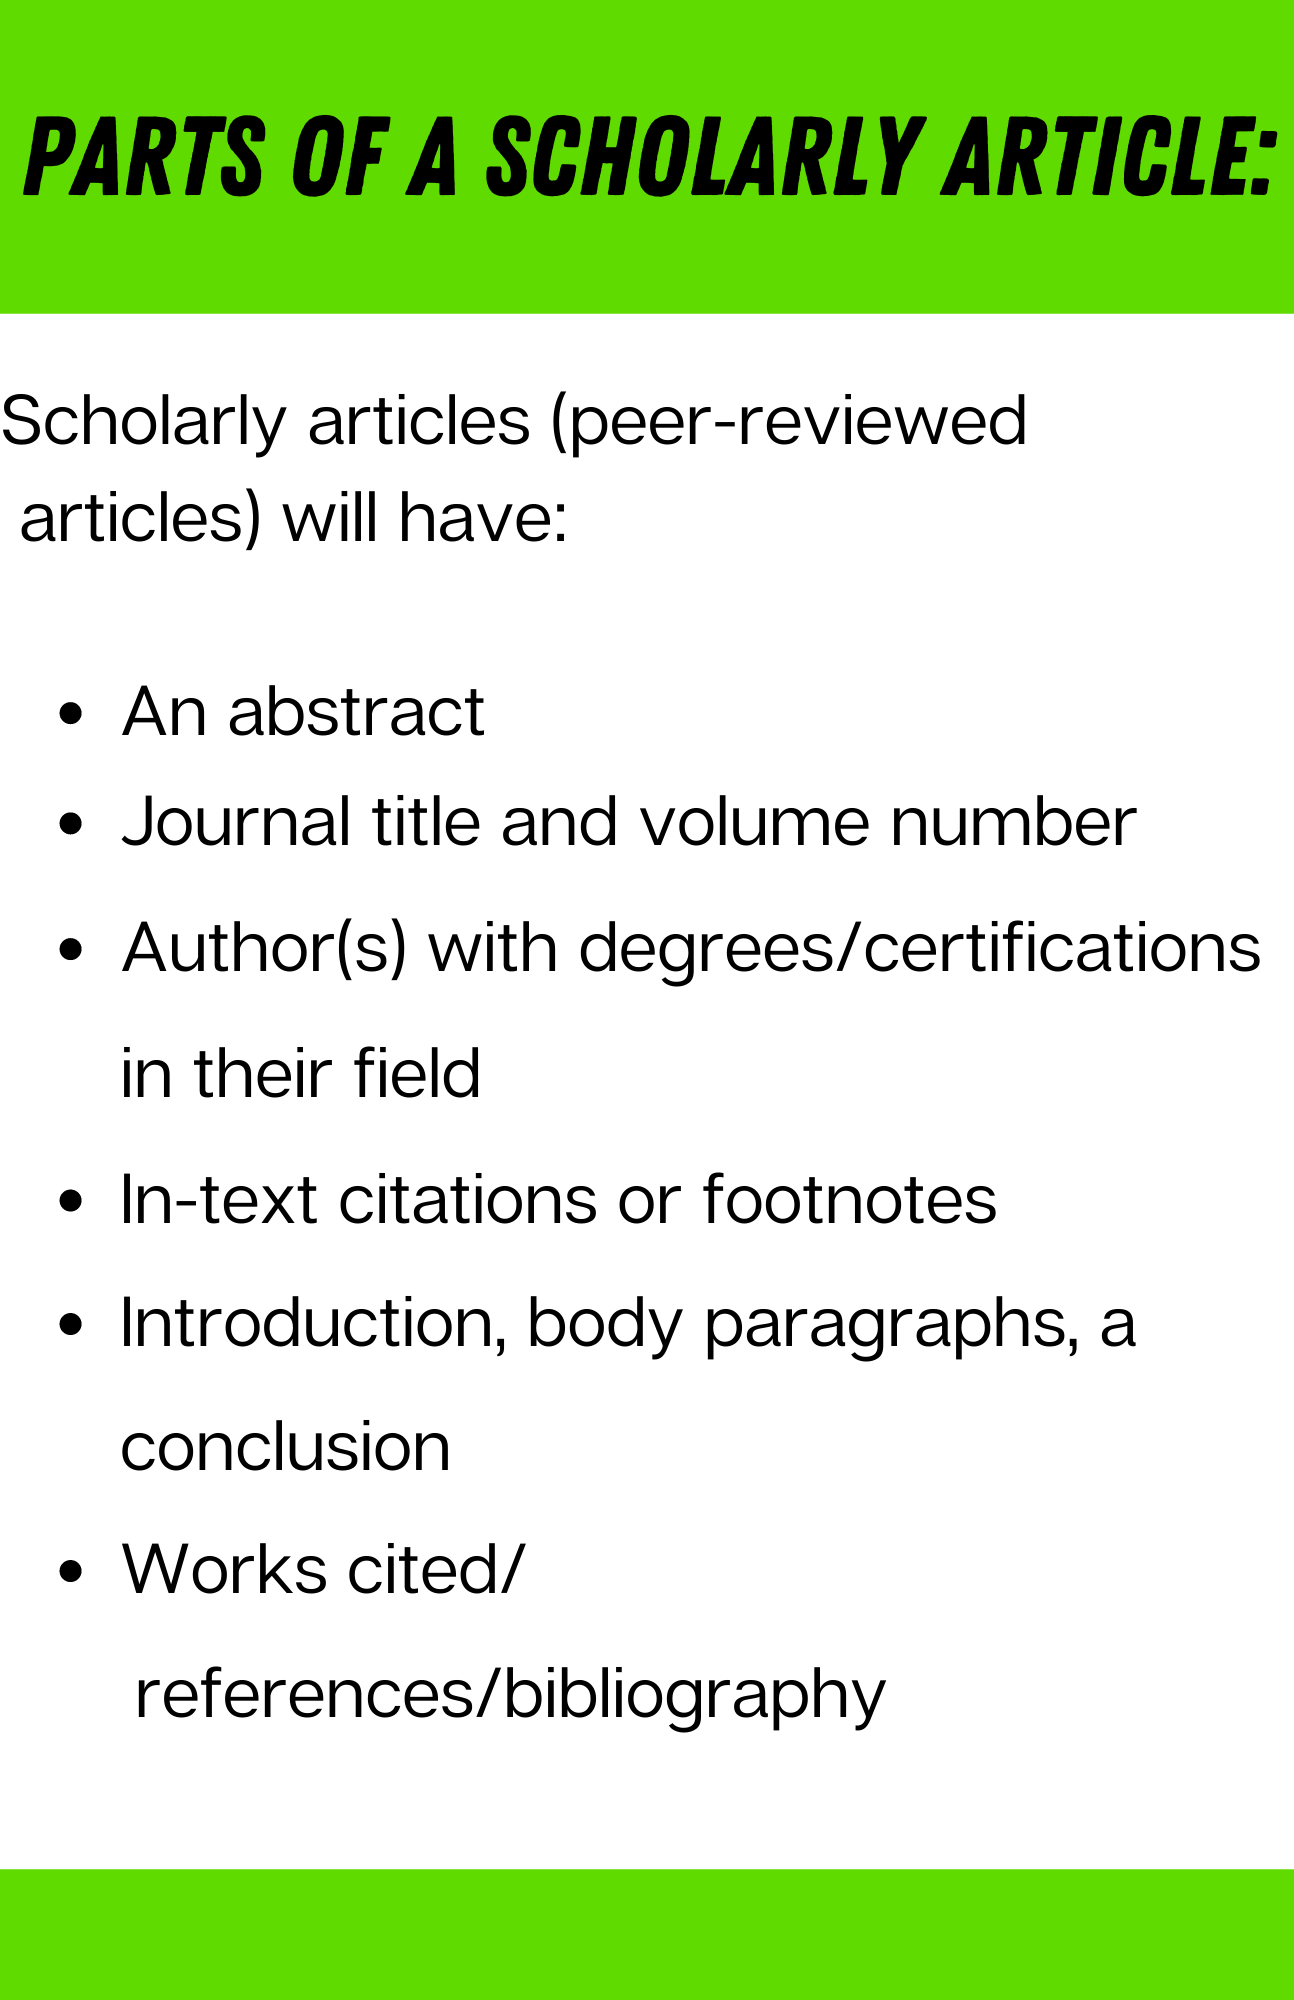 Parts of a Scholarly Article: An abstract Journal title and volume number Author(s) with degrees/certifications in their field  In-text citations or footnotes Introduction, body paragraphs, a conclusion Works cited/        references/bibliography